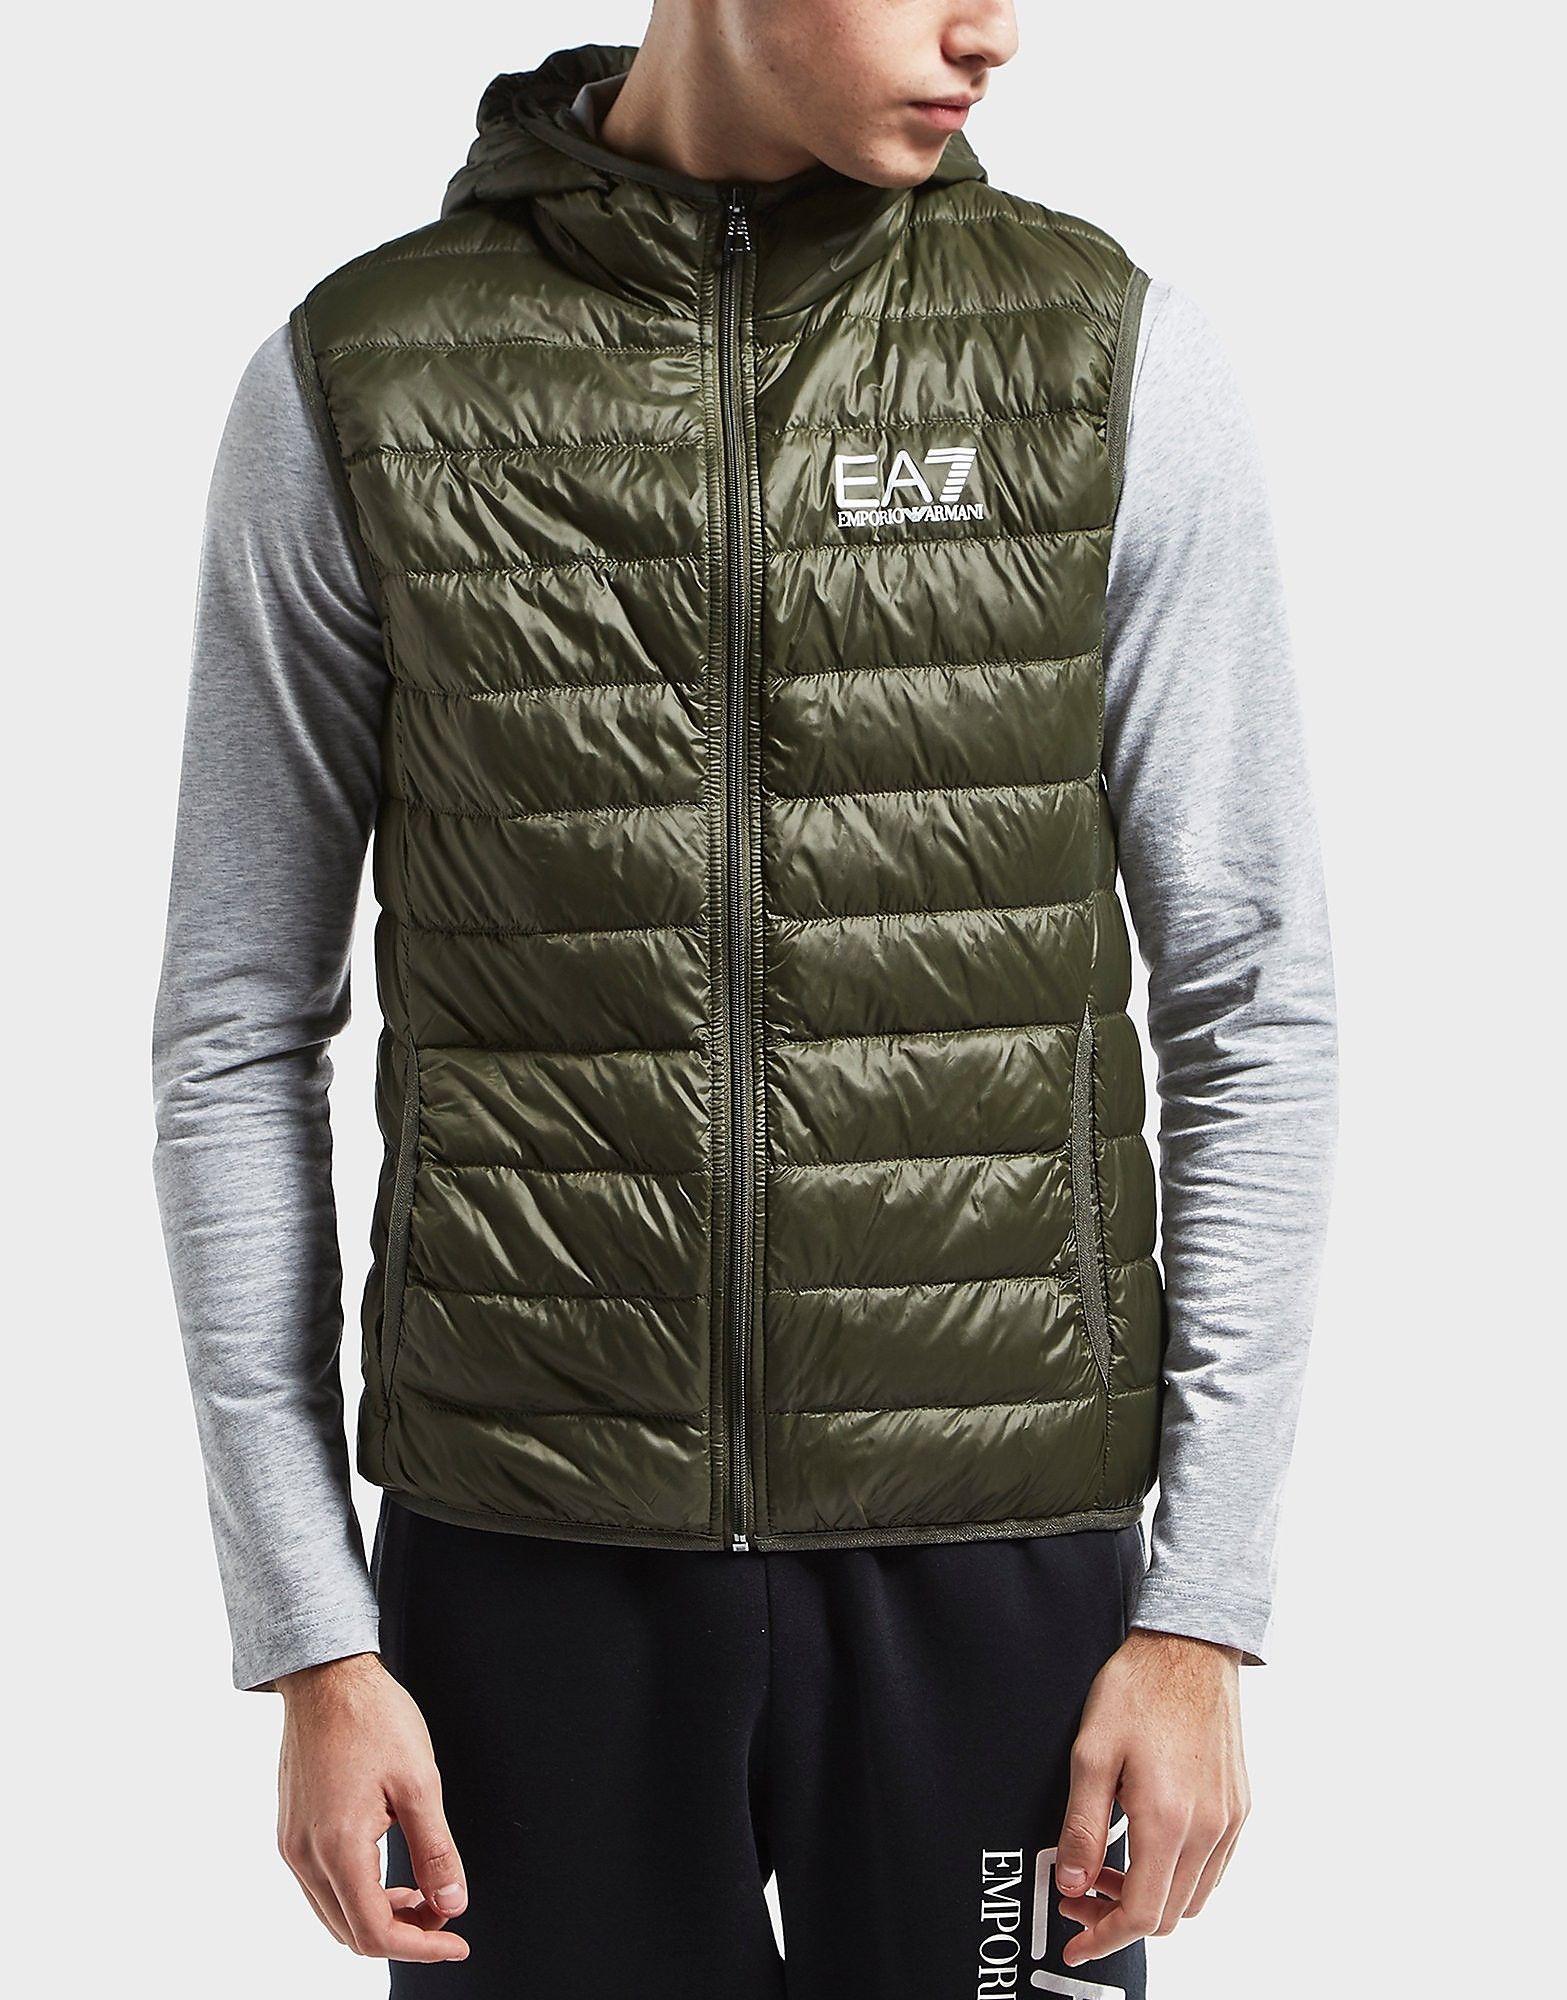 Emporio Armani EA7 Core Hooded Padded Gilet - Exclusive